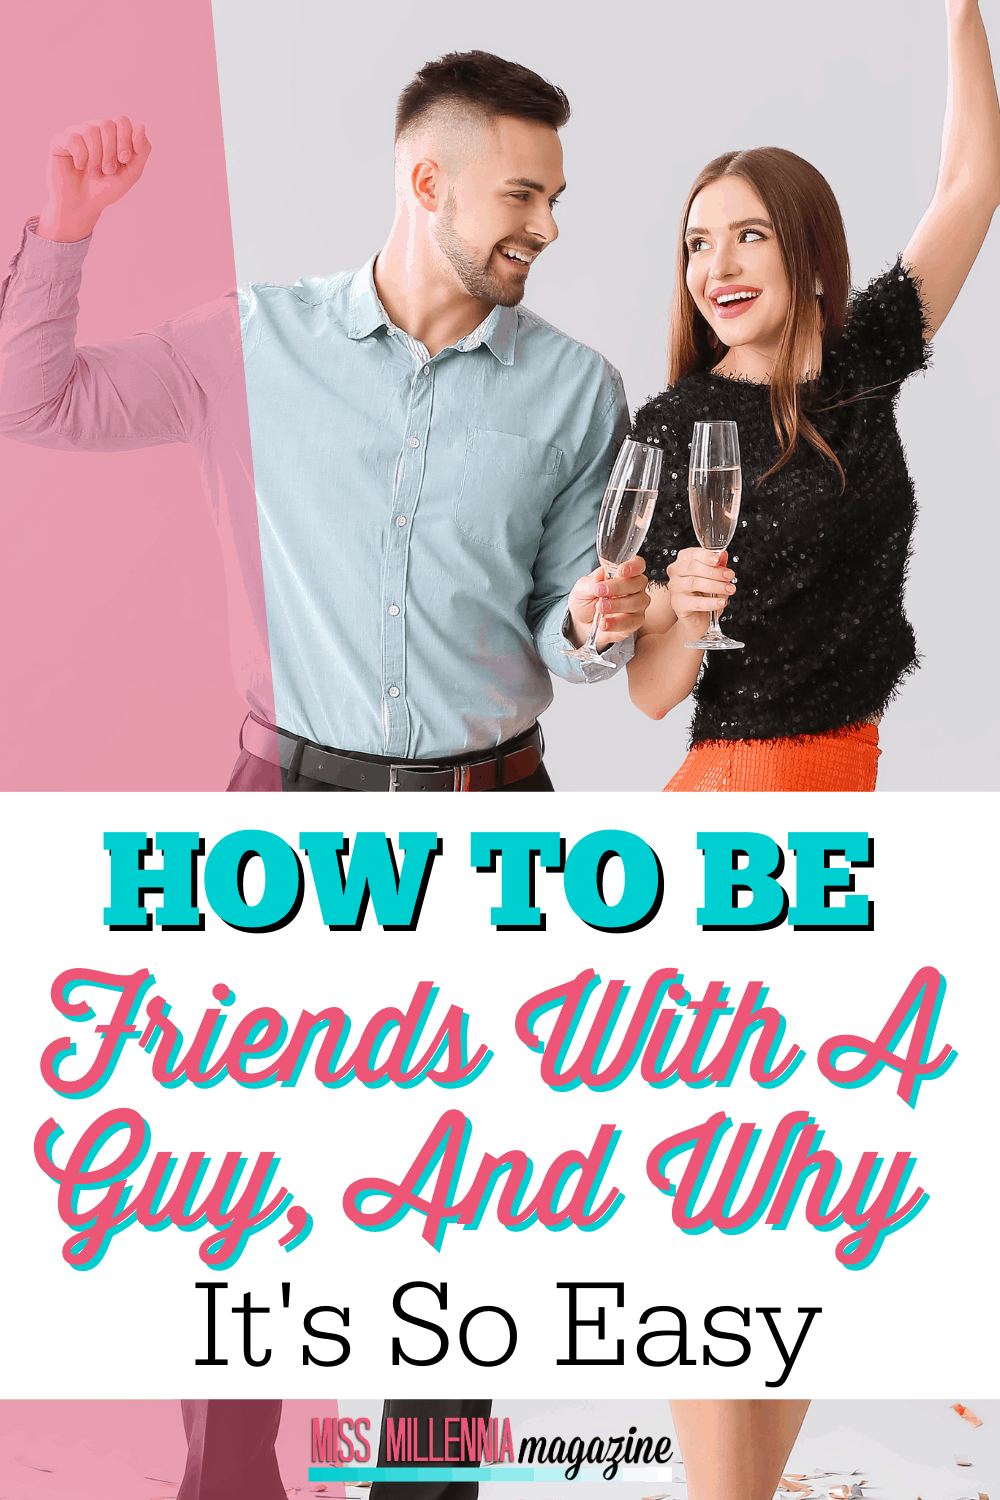 How To Be Friends With A Guy, And Why It's So Easy